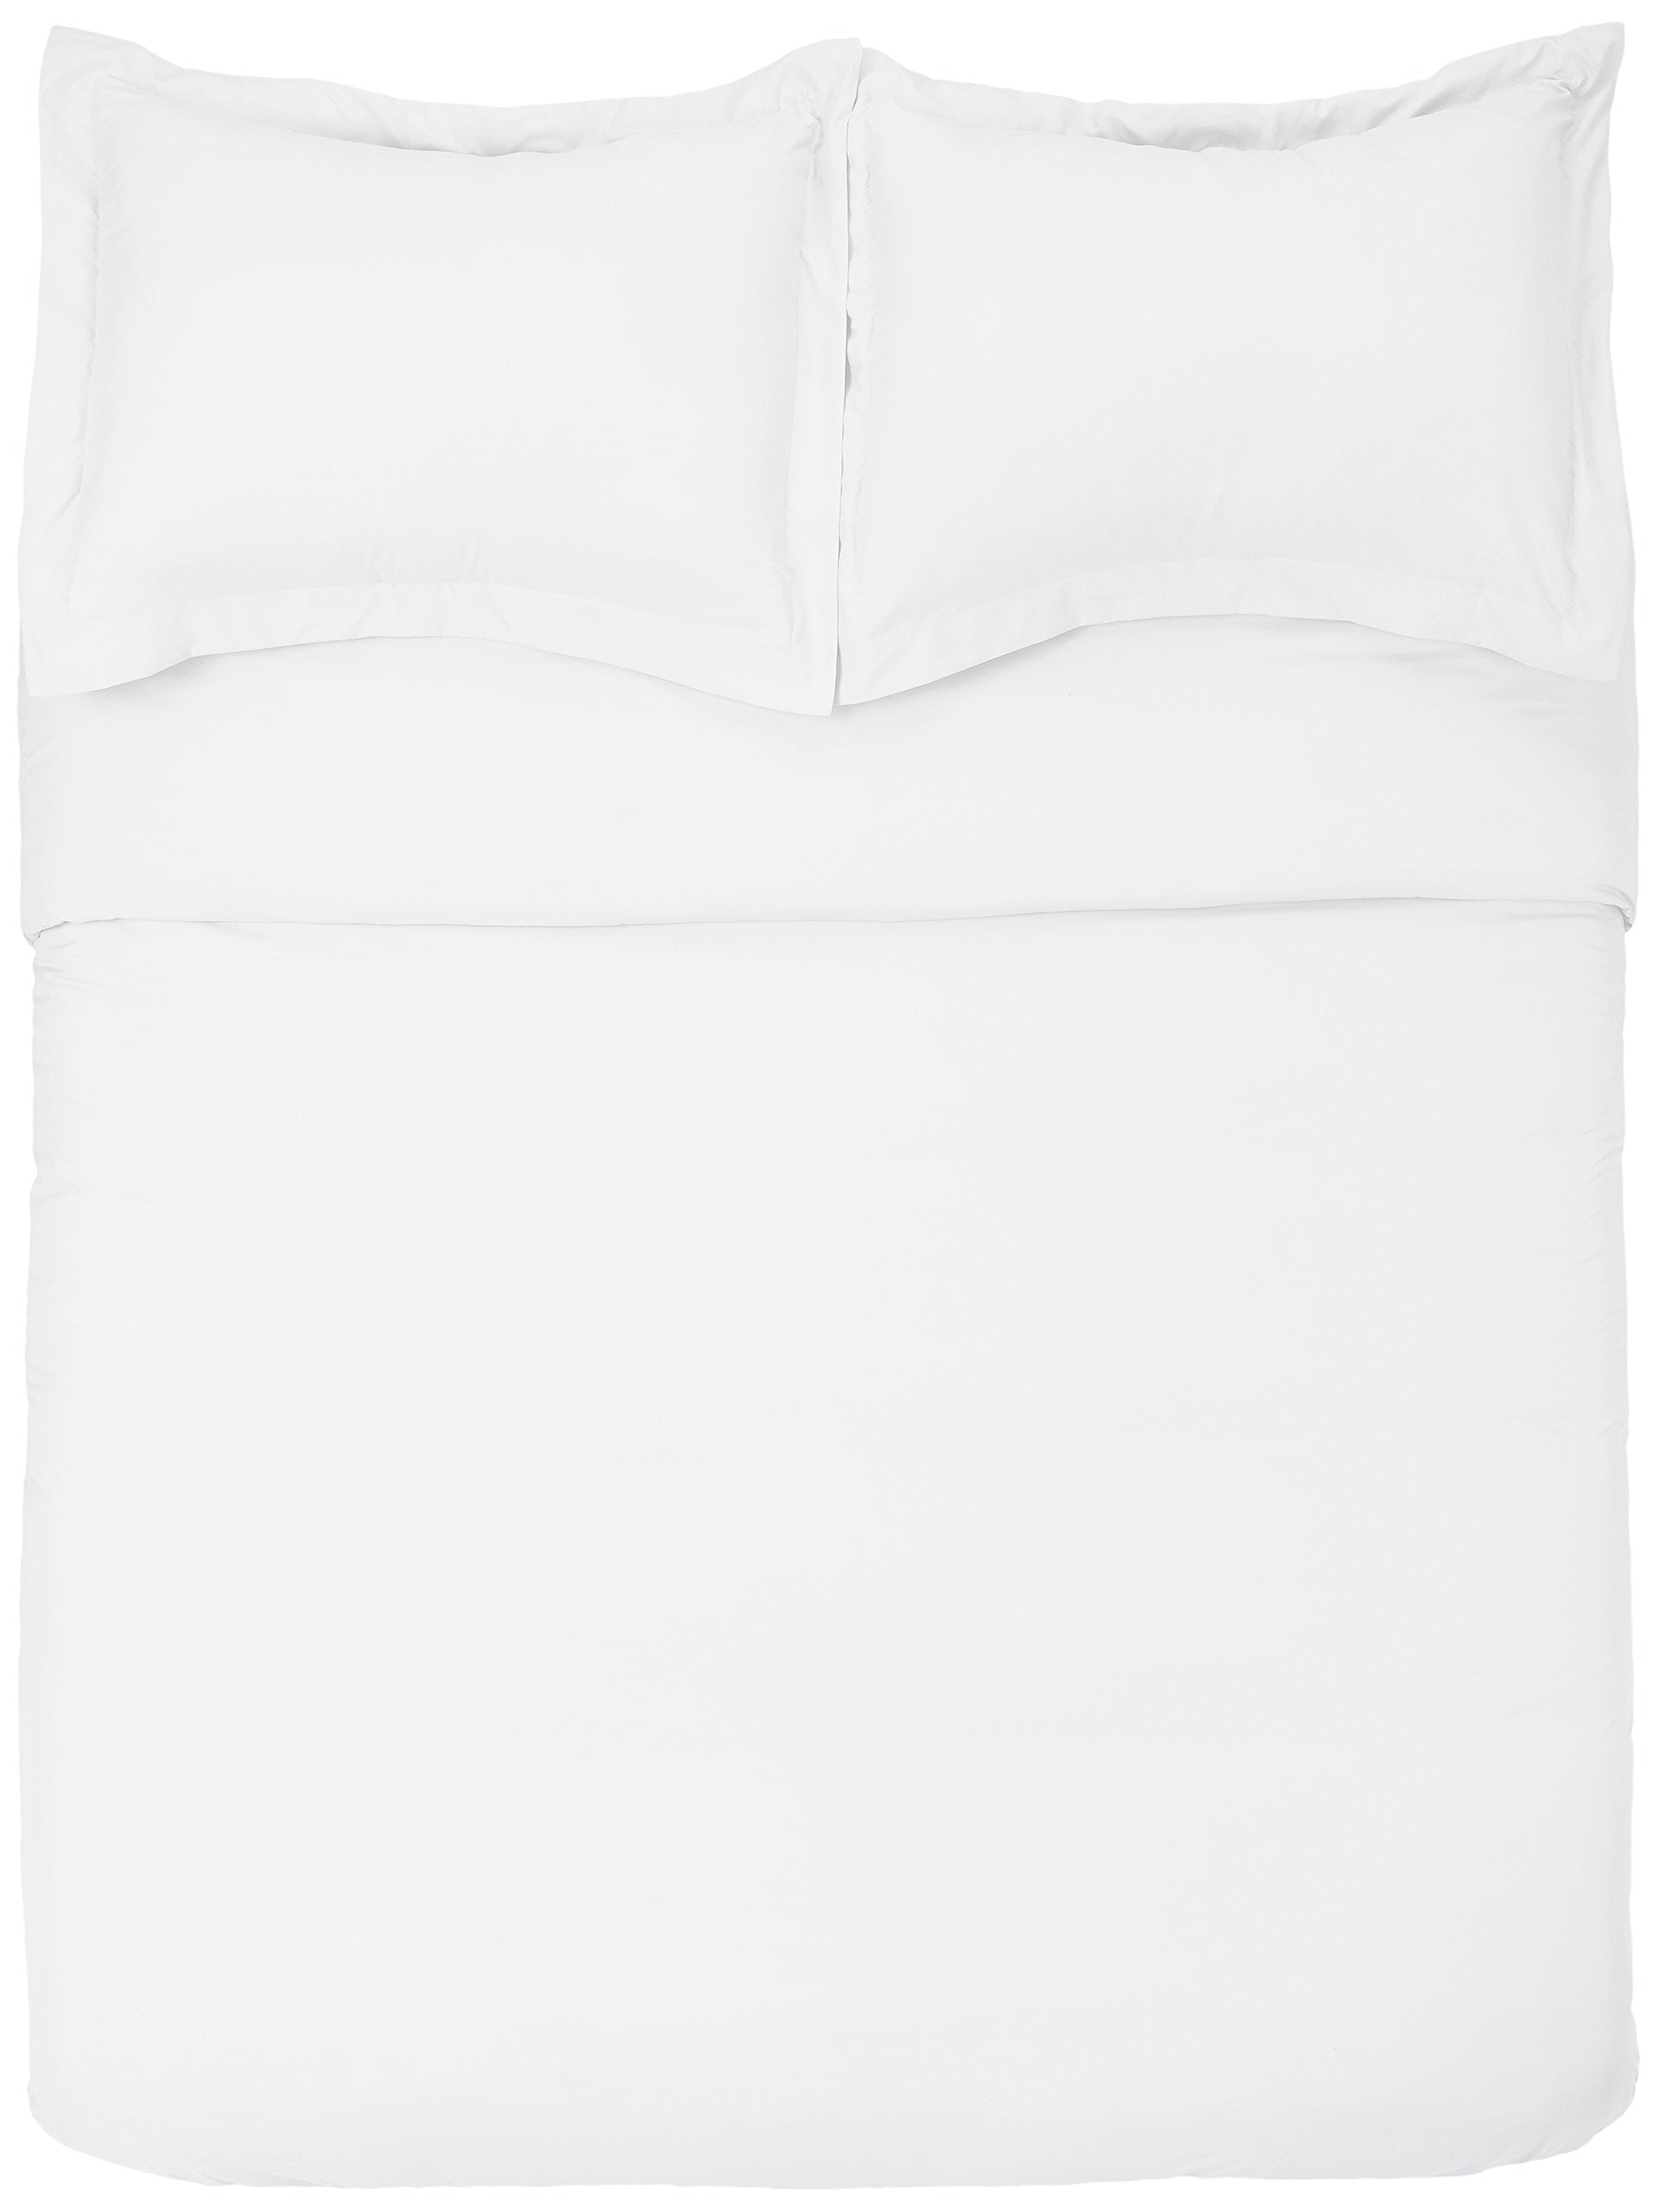 Microfiber Duvet Cover Set - Lightweight and Soft - Twin/Twin XL, Bright White